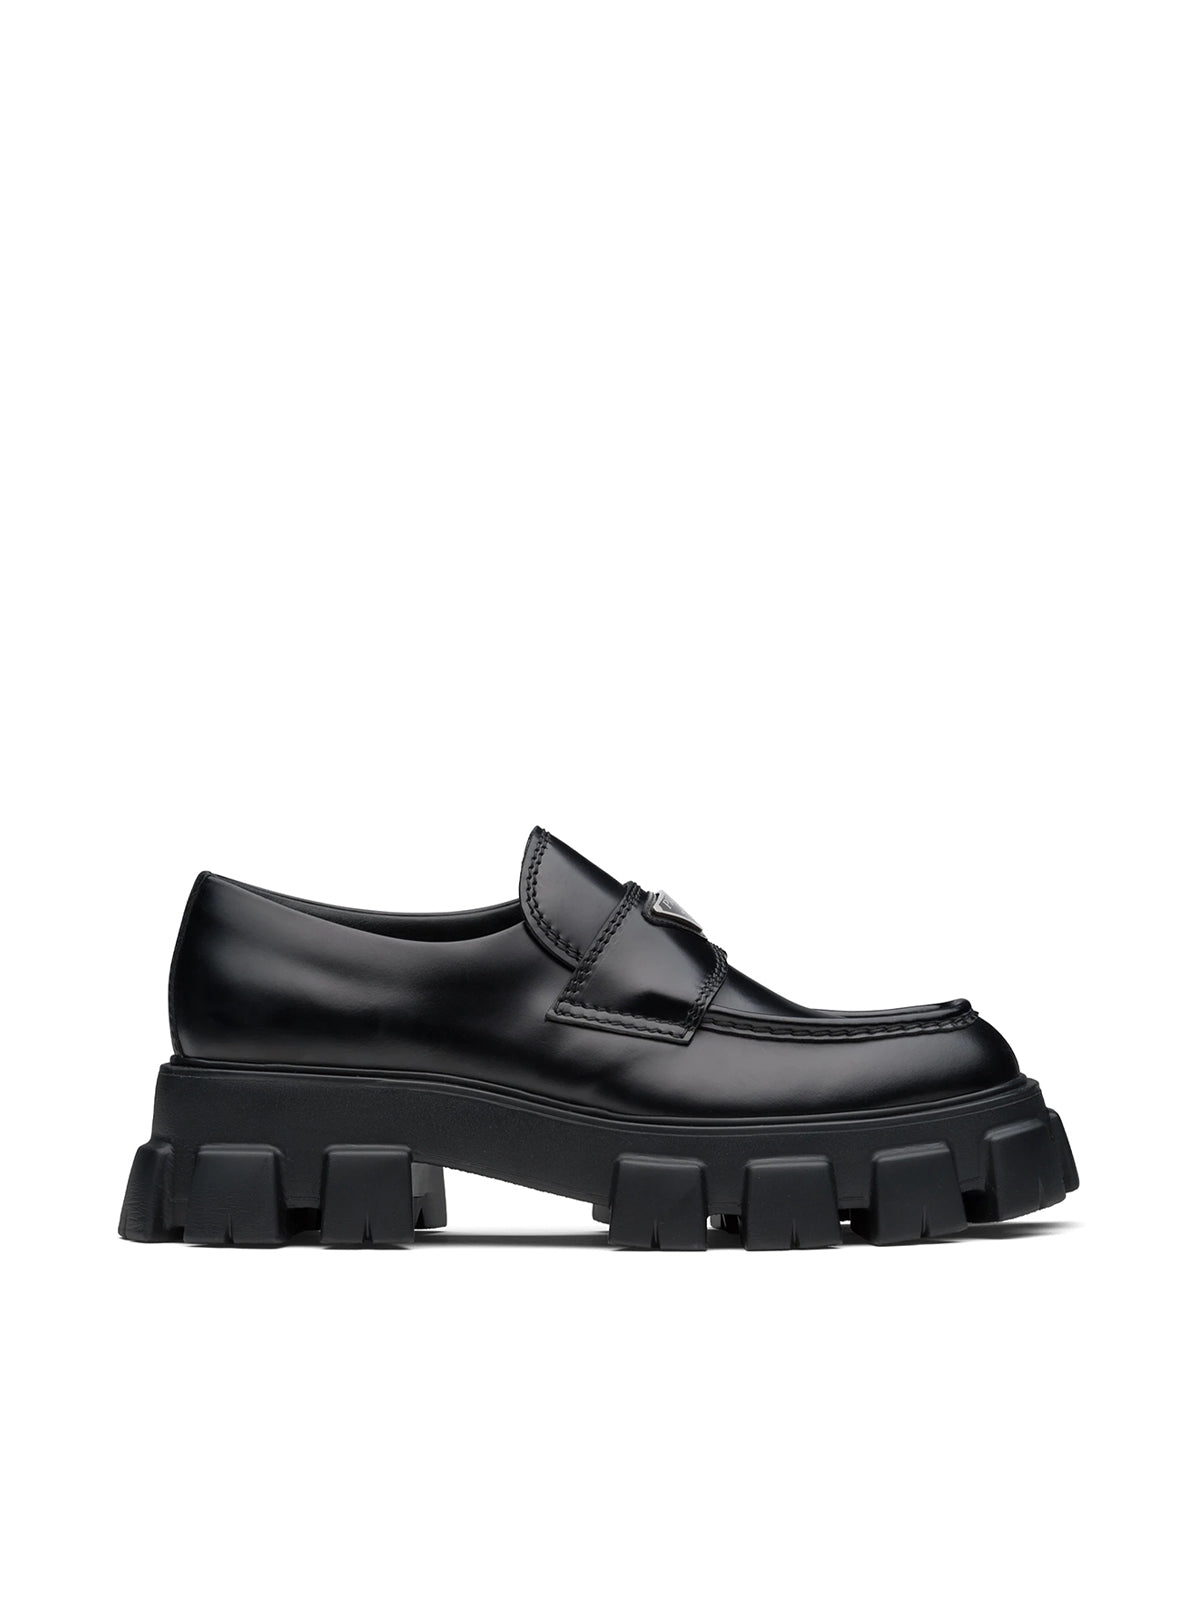 Monolith brushed leather loafers